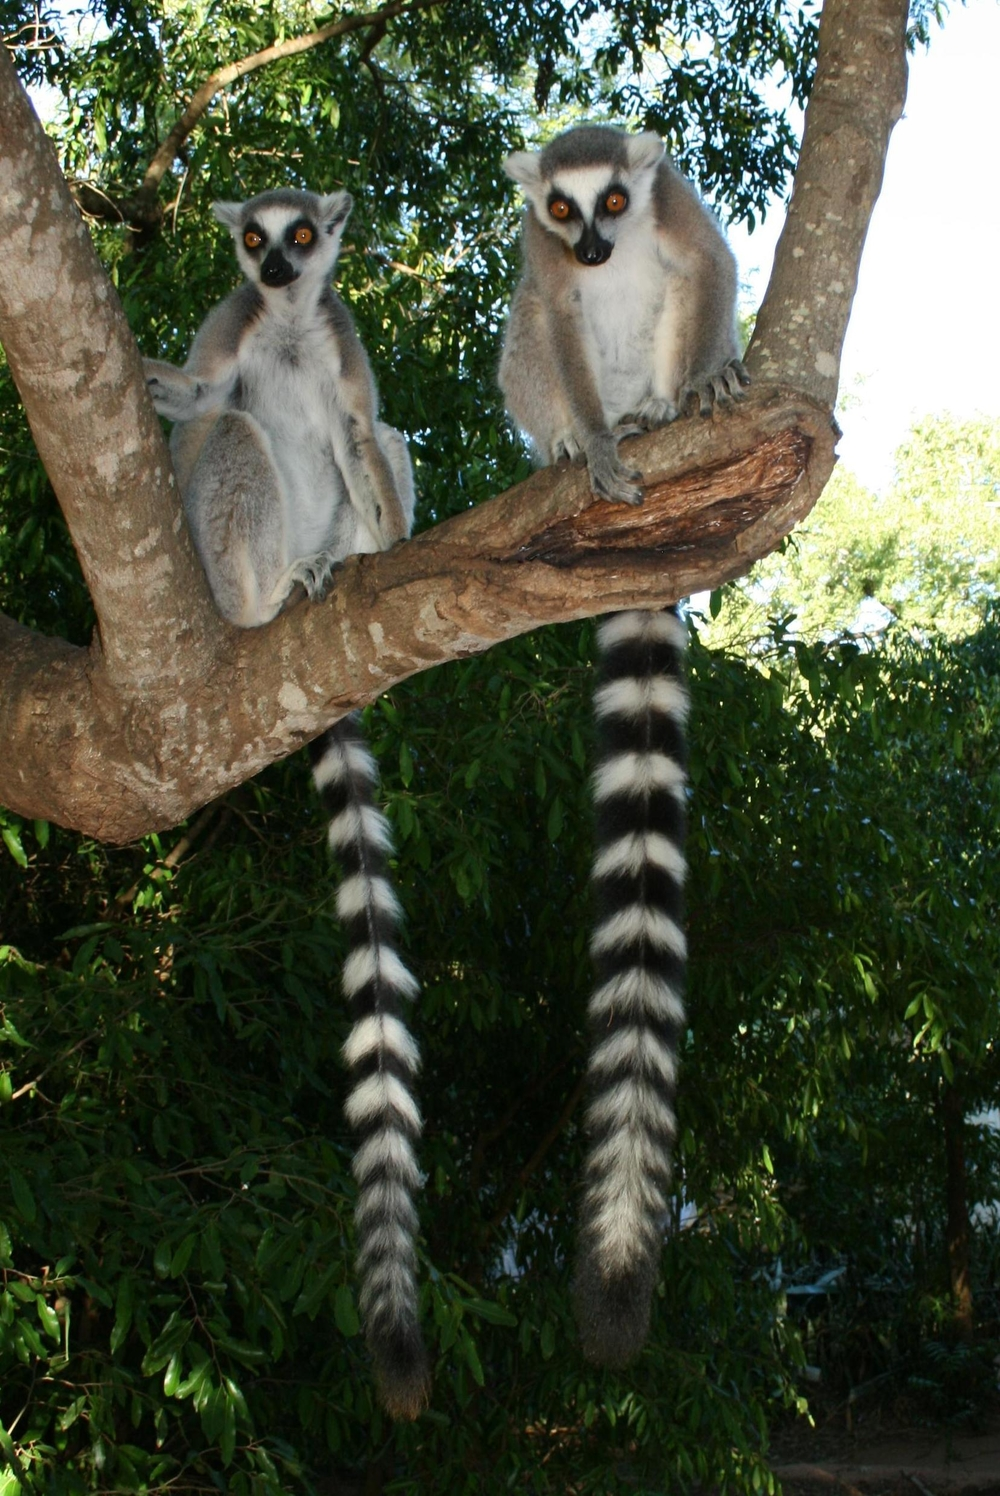 At risk: Lemurs are endemic to Madagascar